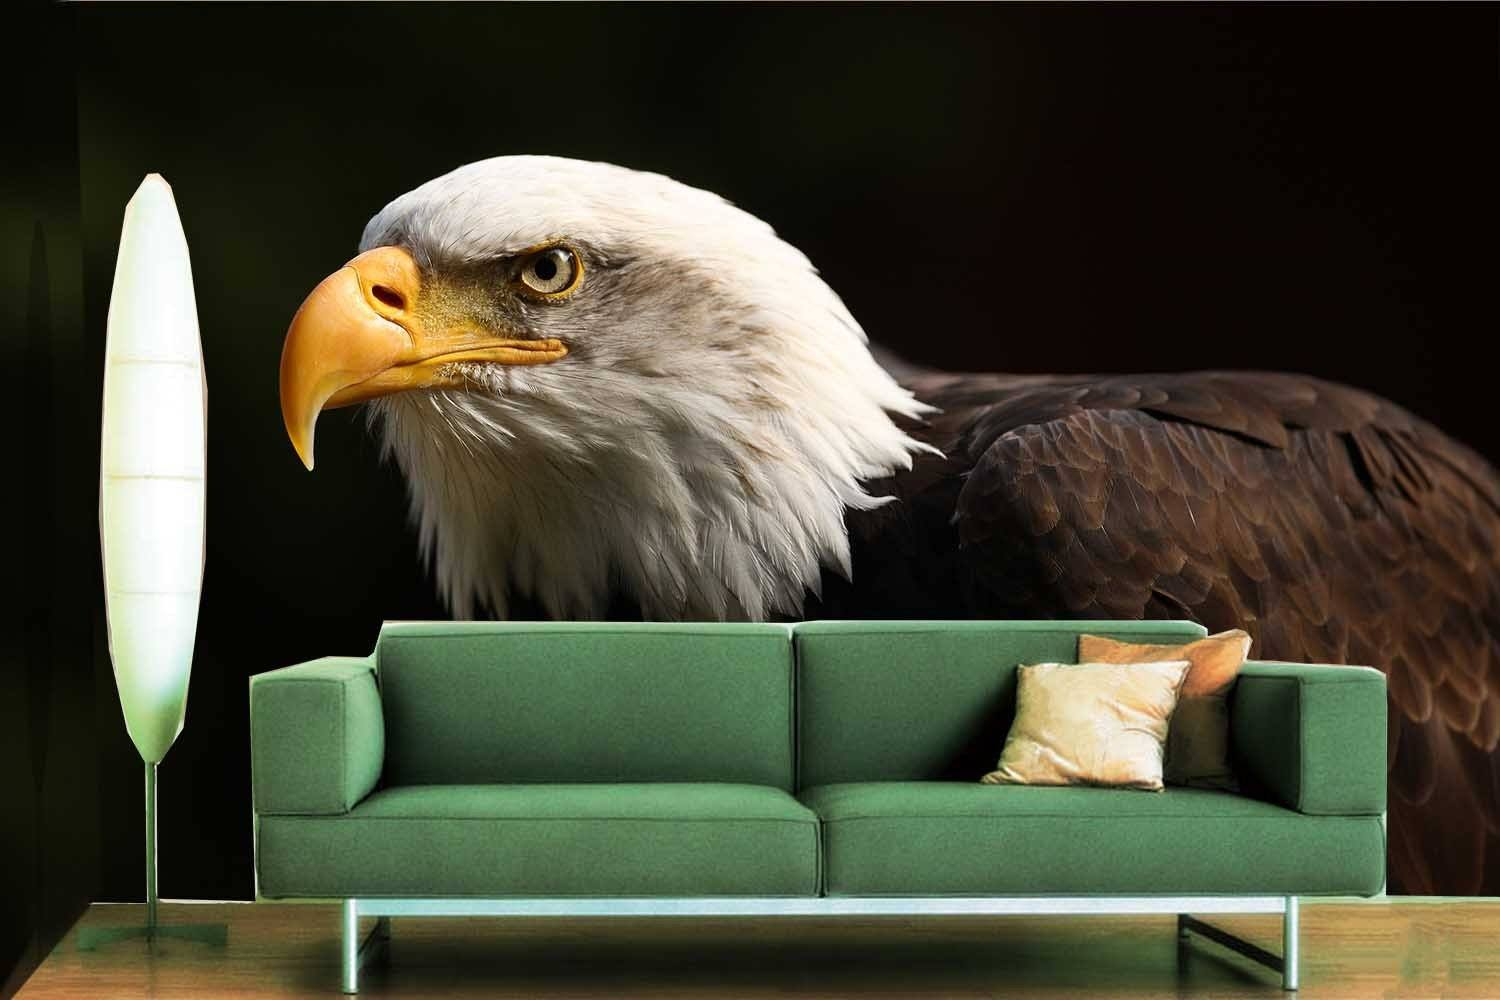 Beautiful Eagle 1 Wallpaper AJ Wallpaper